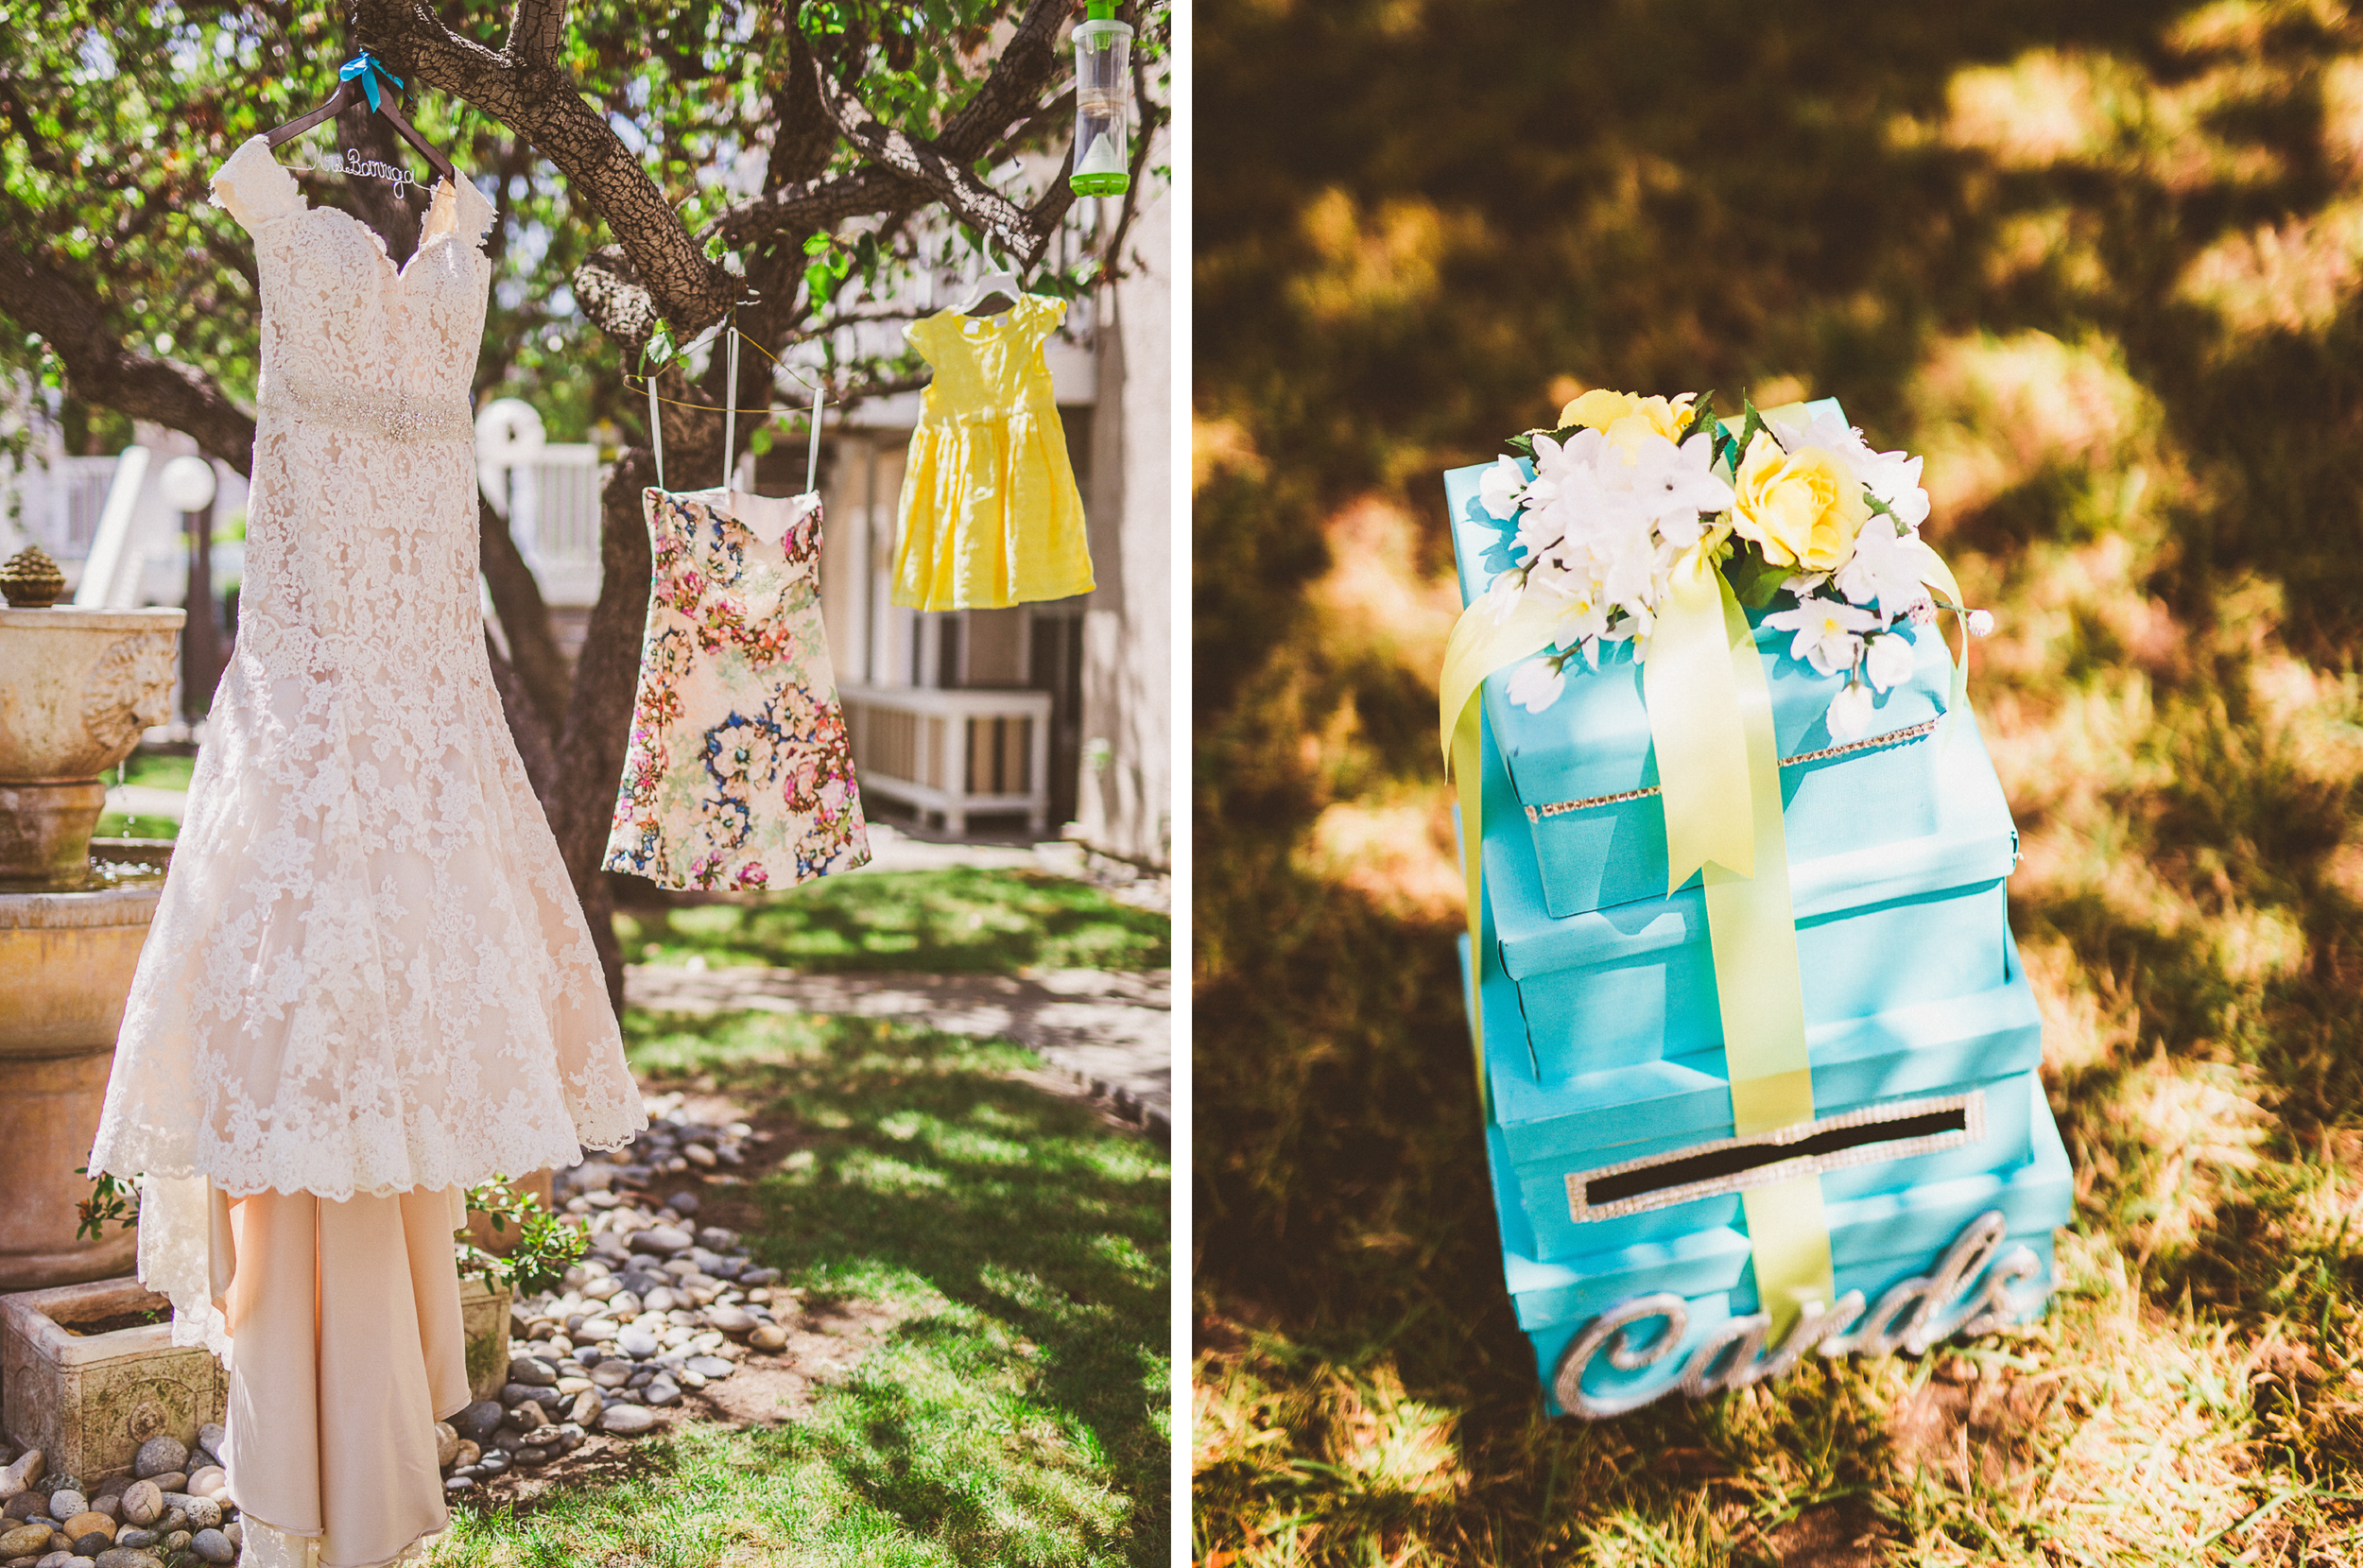 san diego wedding   photographer   collage of dresses on a tree and gift boxes